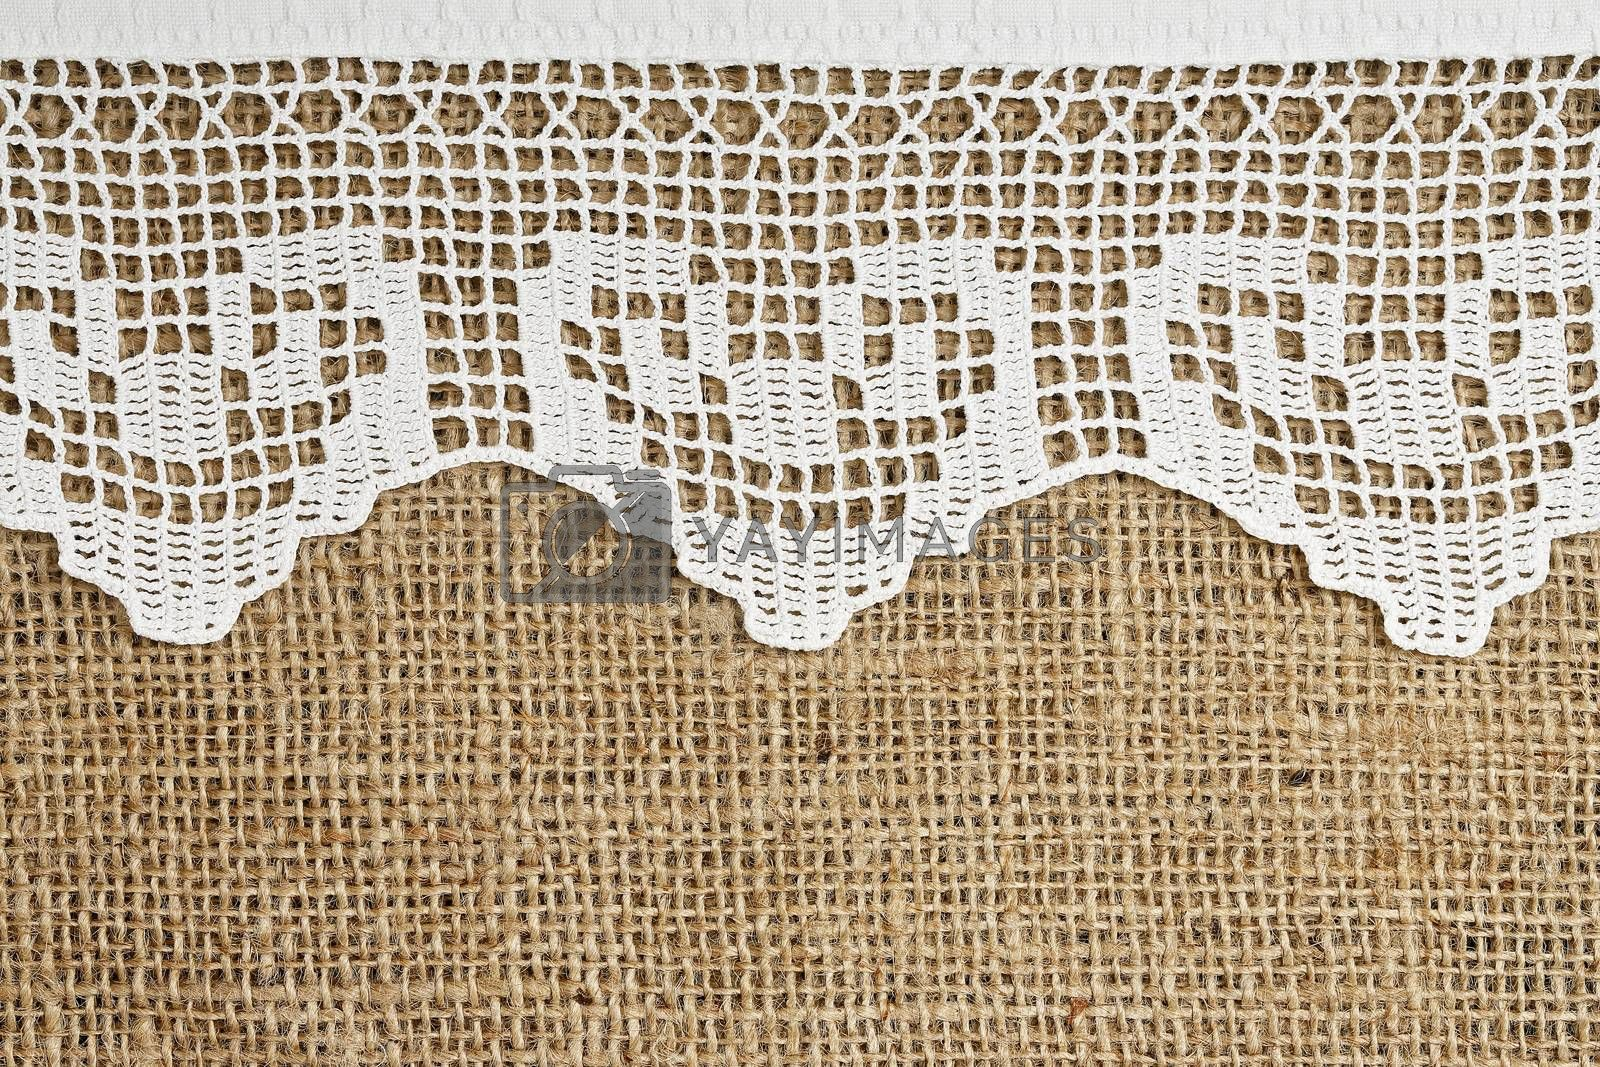 handmade lace on burlap for backgrounds